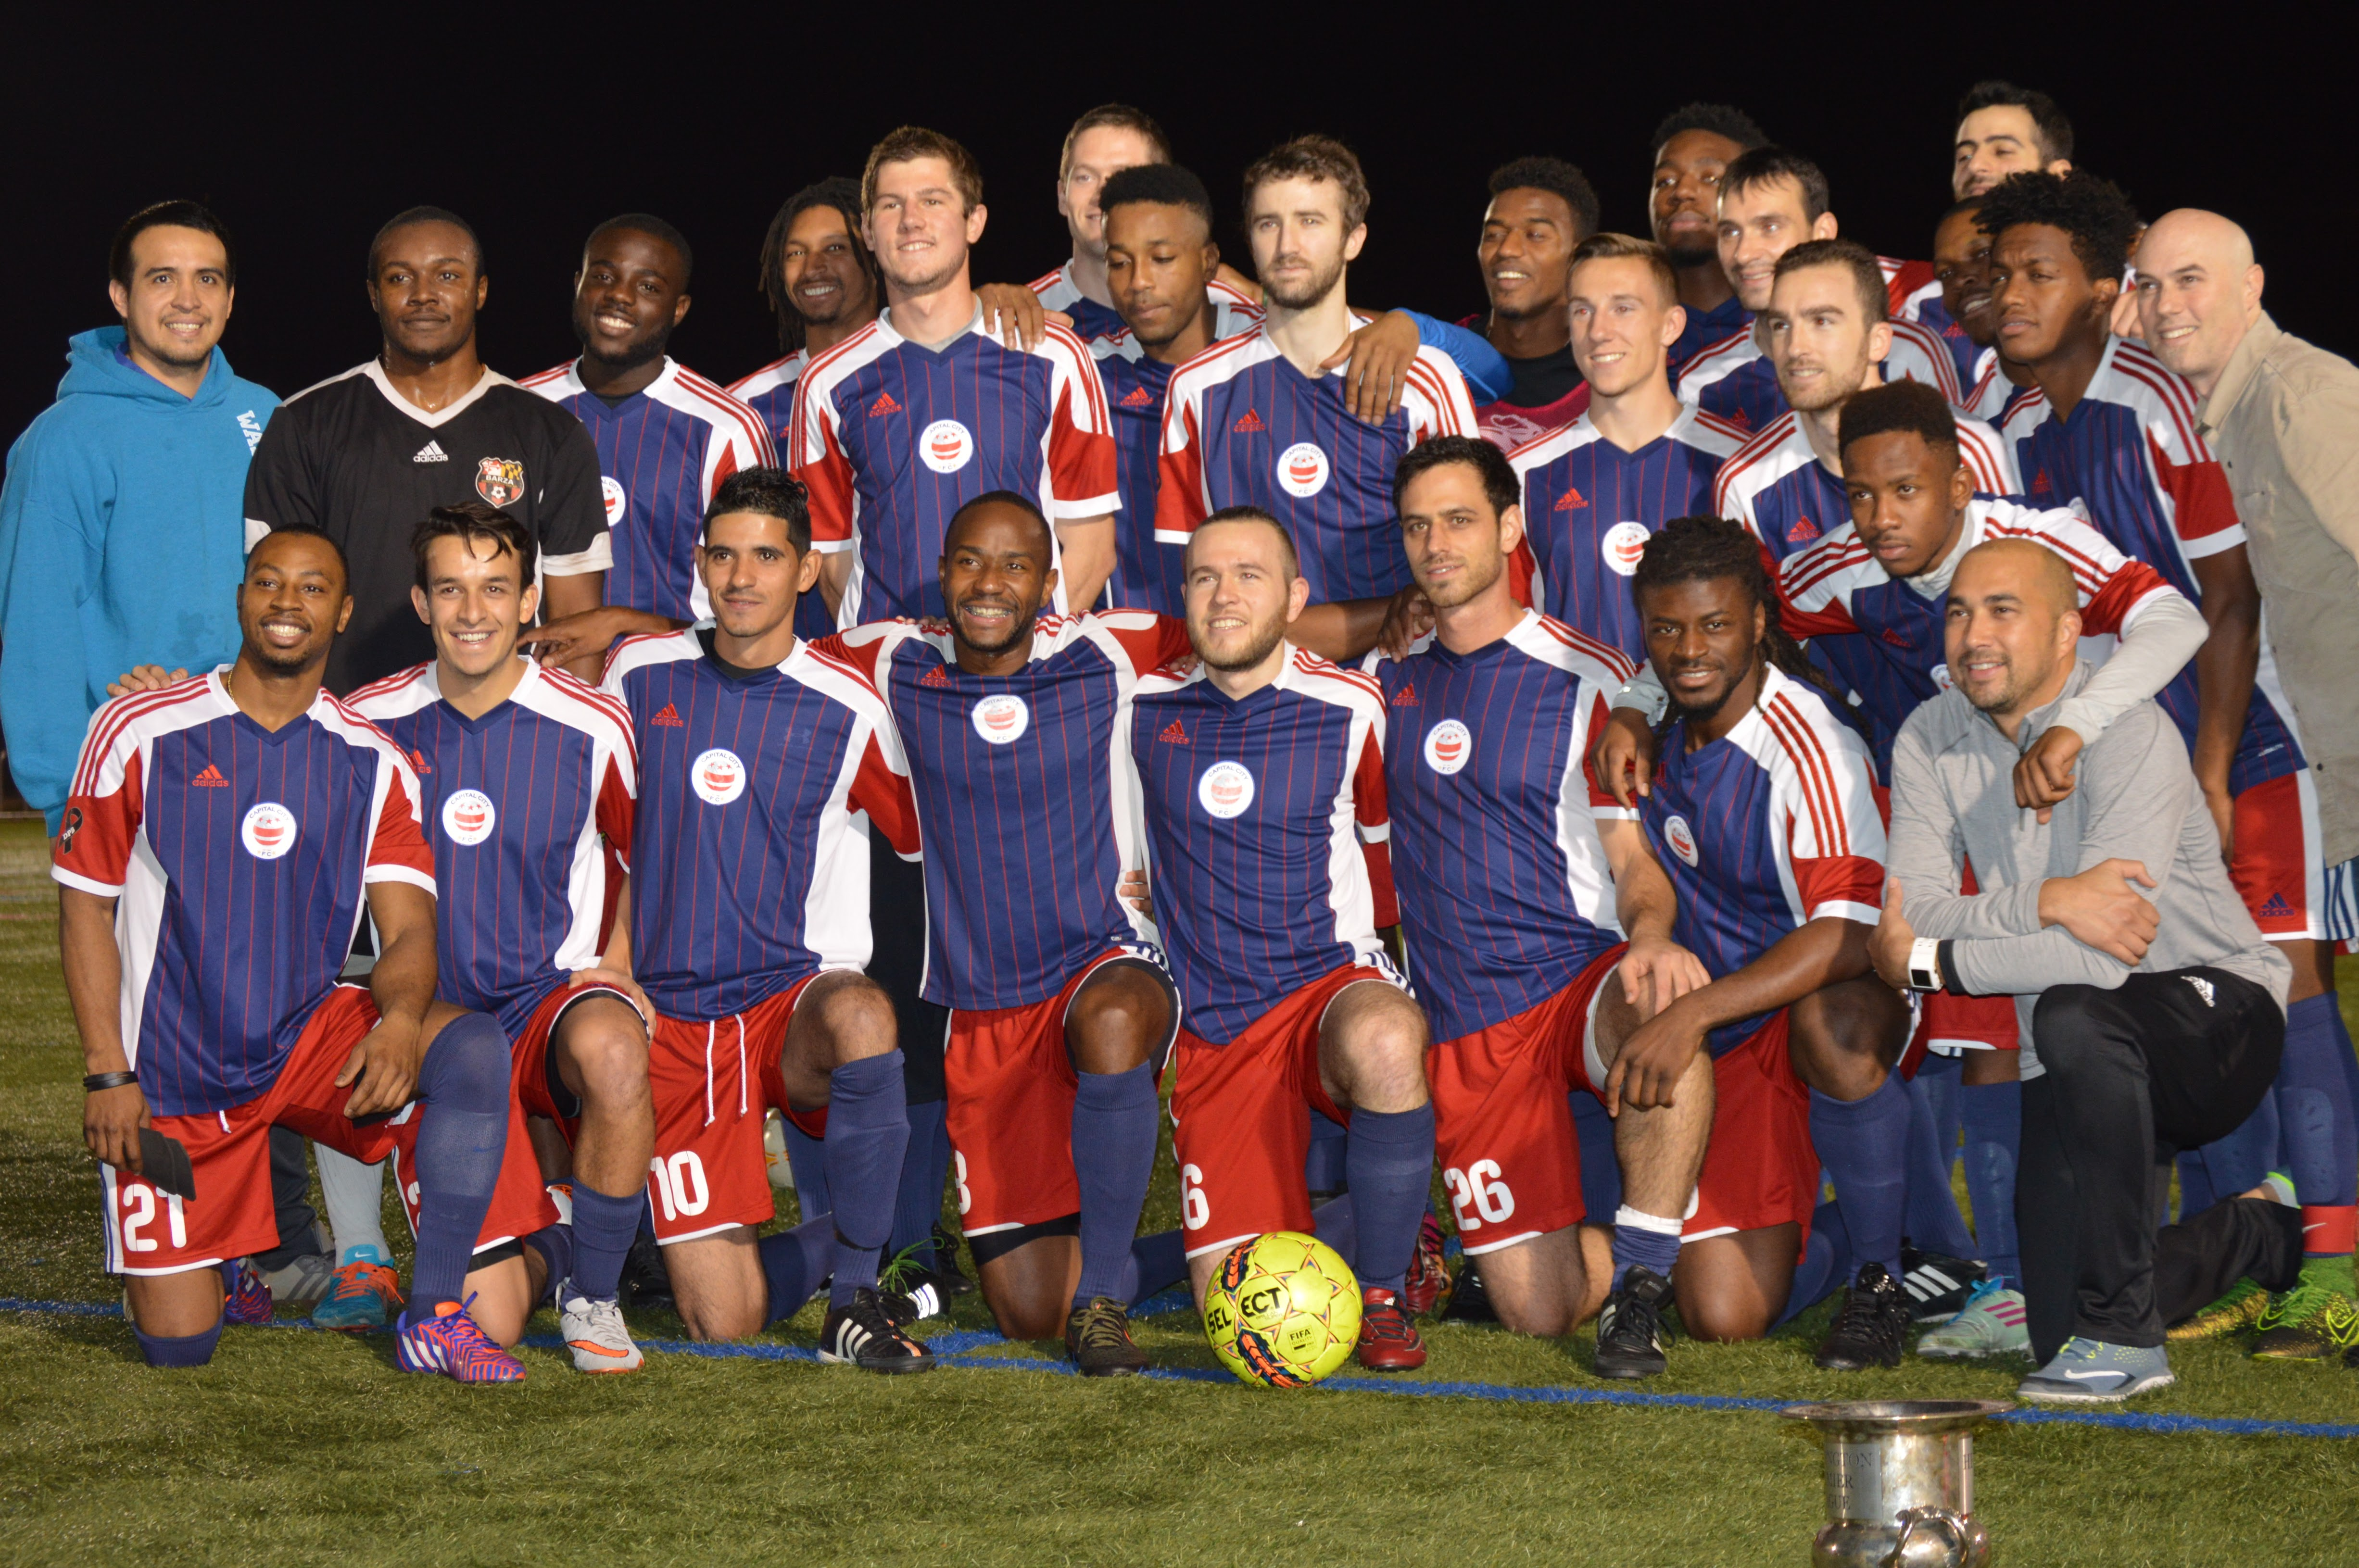 Capital City FC Win Fall 2015 Helge Boes Cup (WPL Championship)